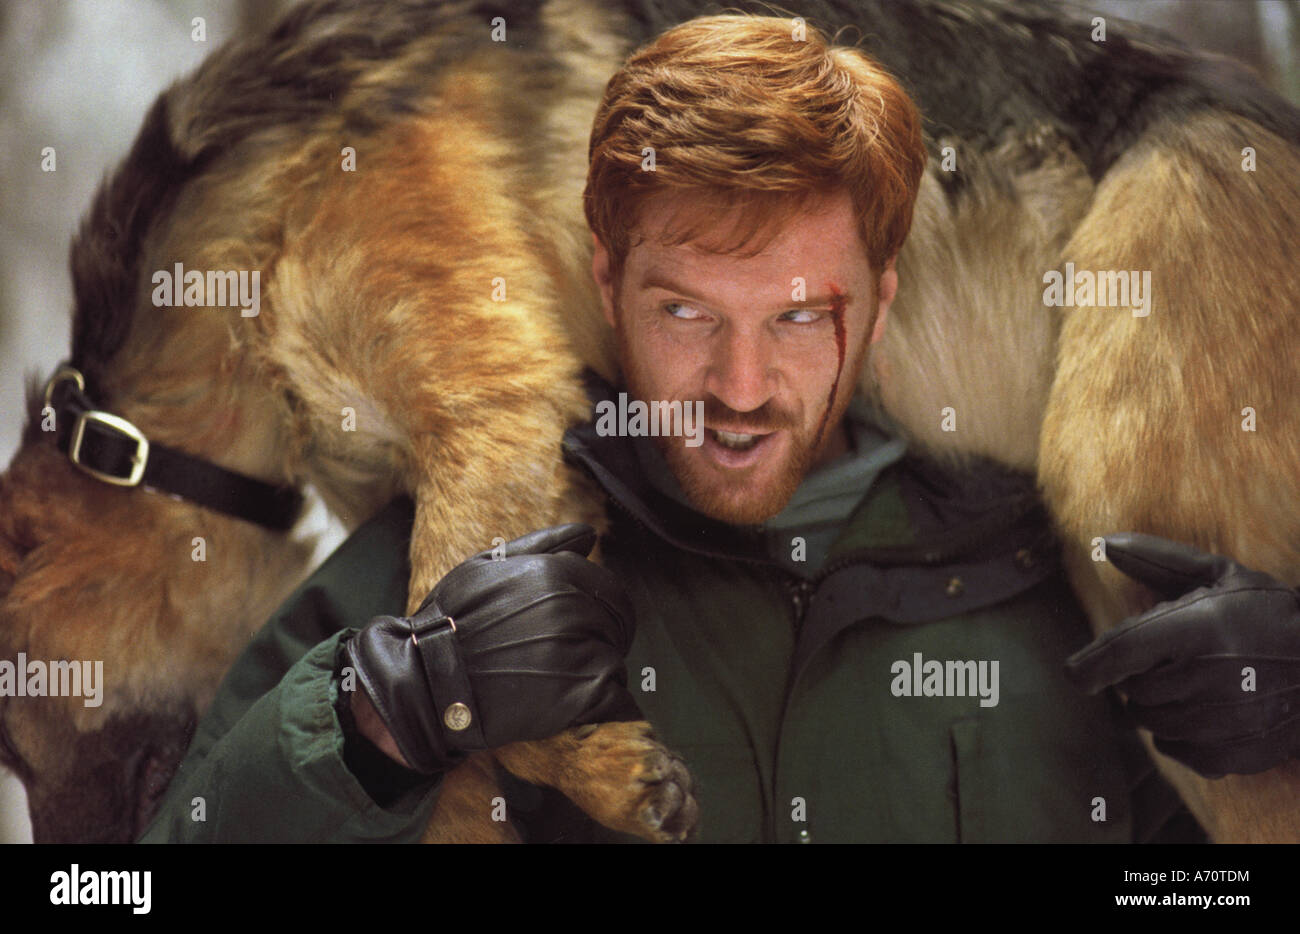 DREAMCATCHER 2003 Warner/Castle Rock film with Damian Lewis - Stock Image